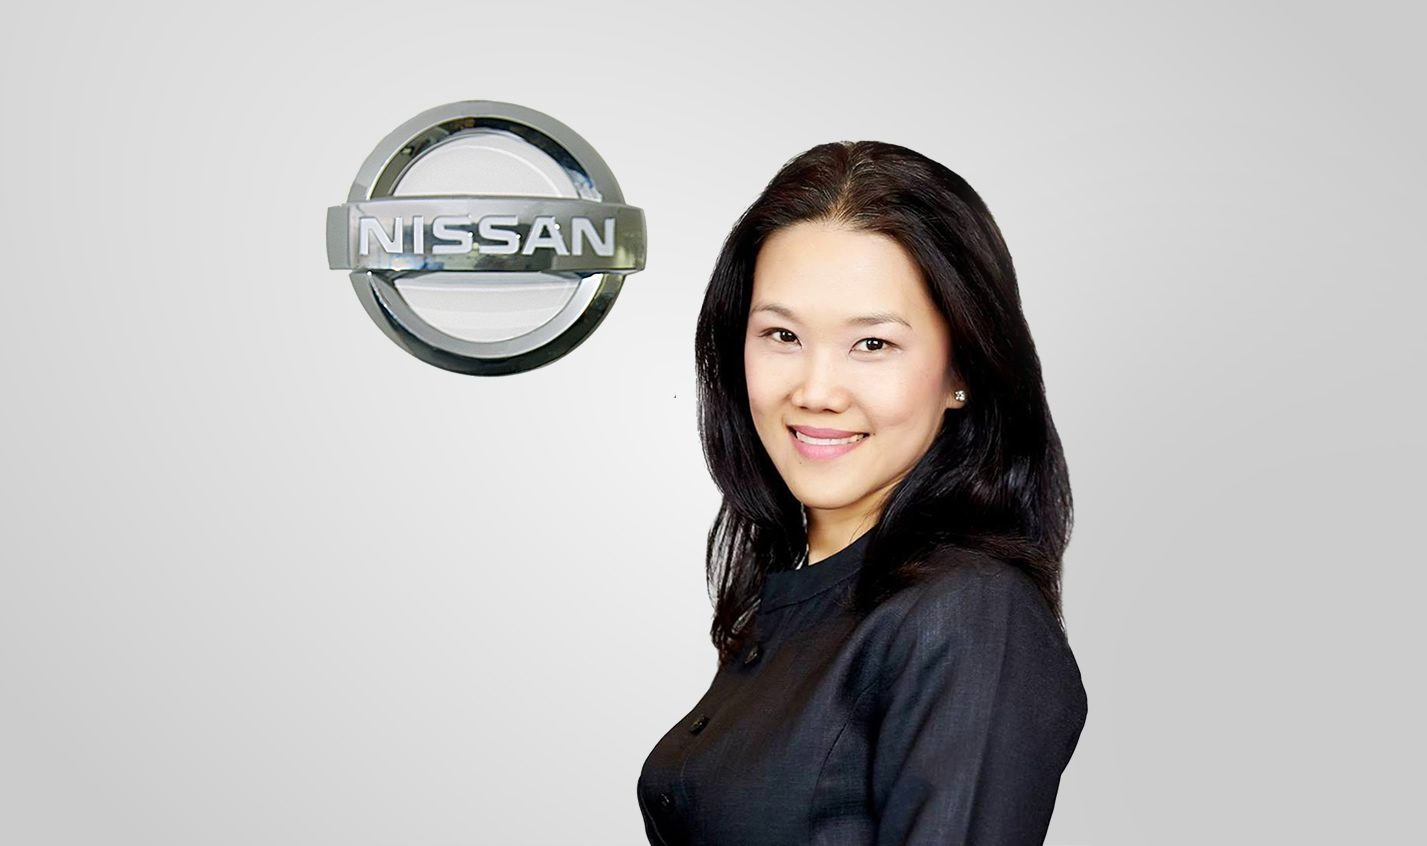 NISSAN Thailand appoints the General Manager of Corporate Communications